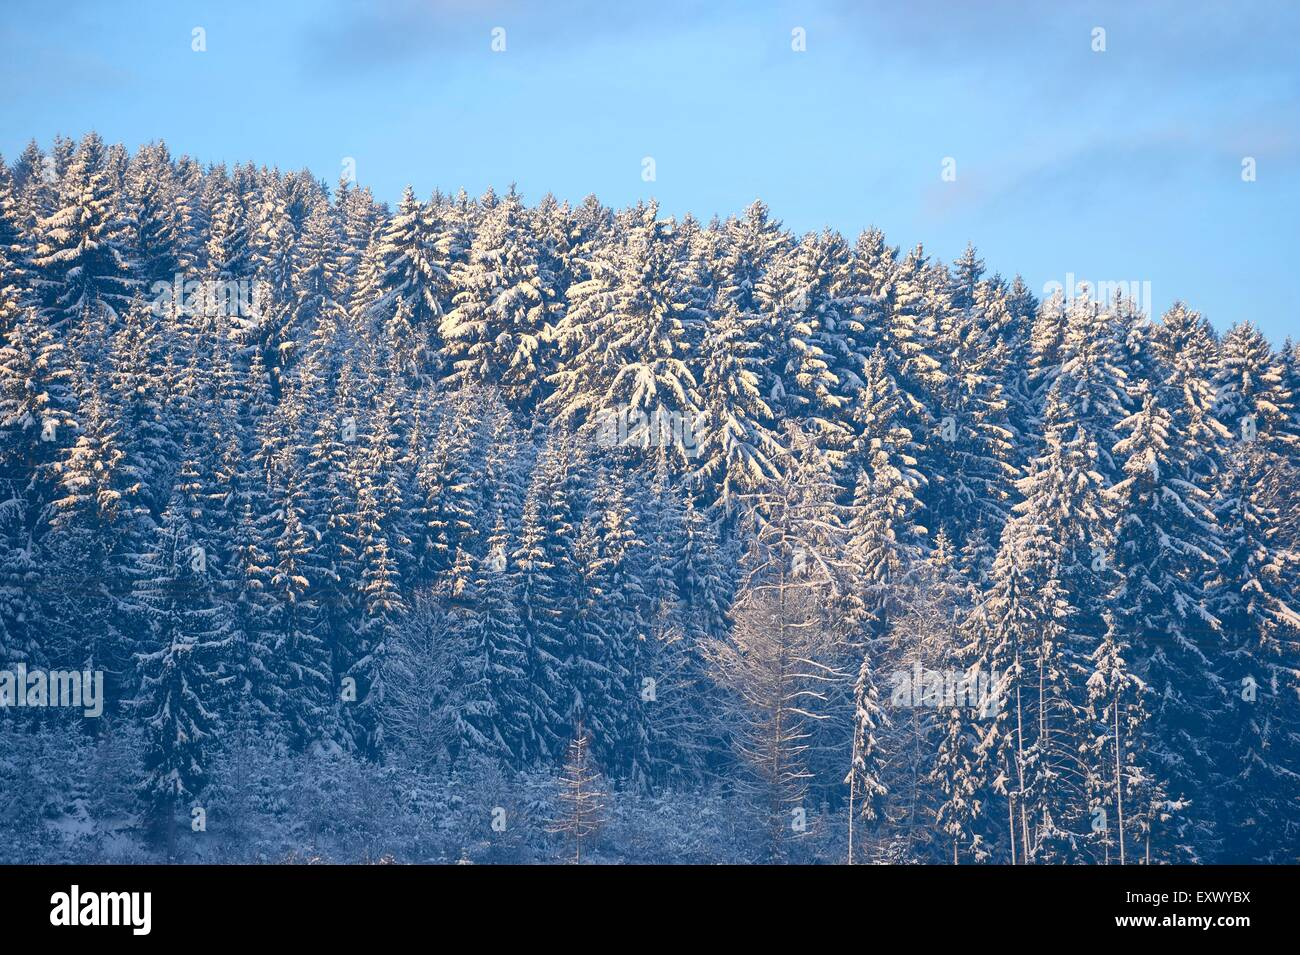 Norway spruces, Picea abies, in winter, Upper Palatinate, Bavaria, Germany, Europe - Stock Image